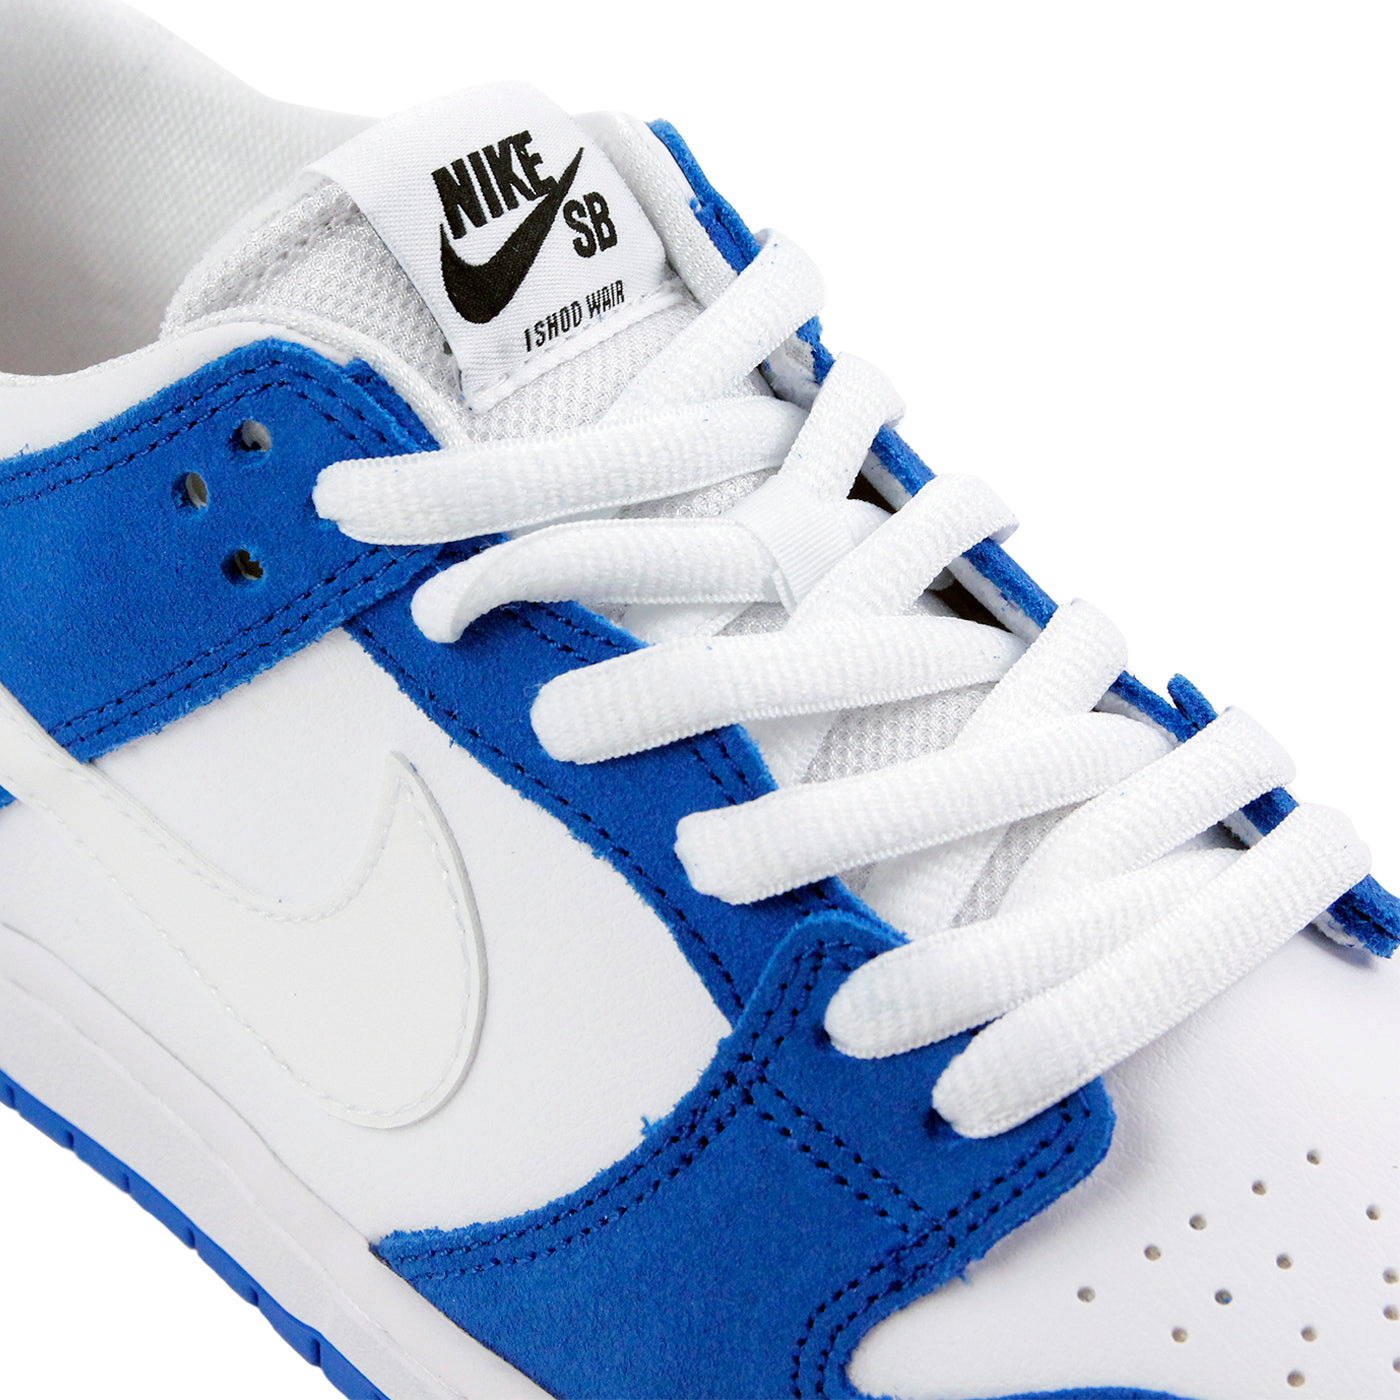 huge discount c858a 544ae Nike SB Dunk Low Pro Ishod Wair Shoes - Blue Spark   White - Black. Size  Charts